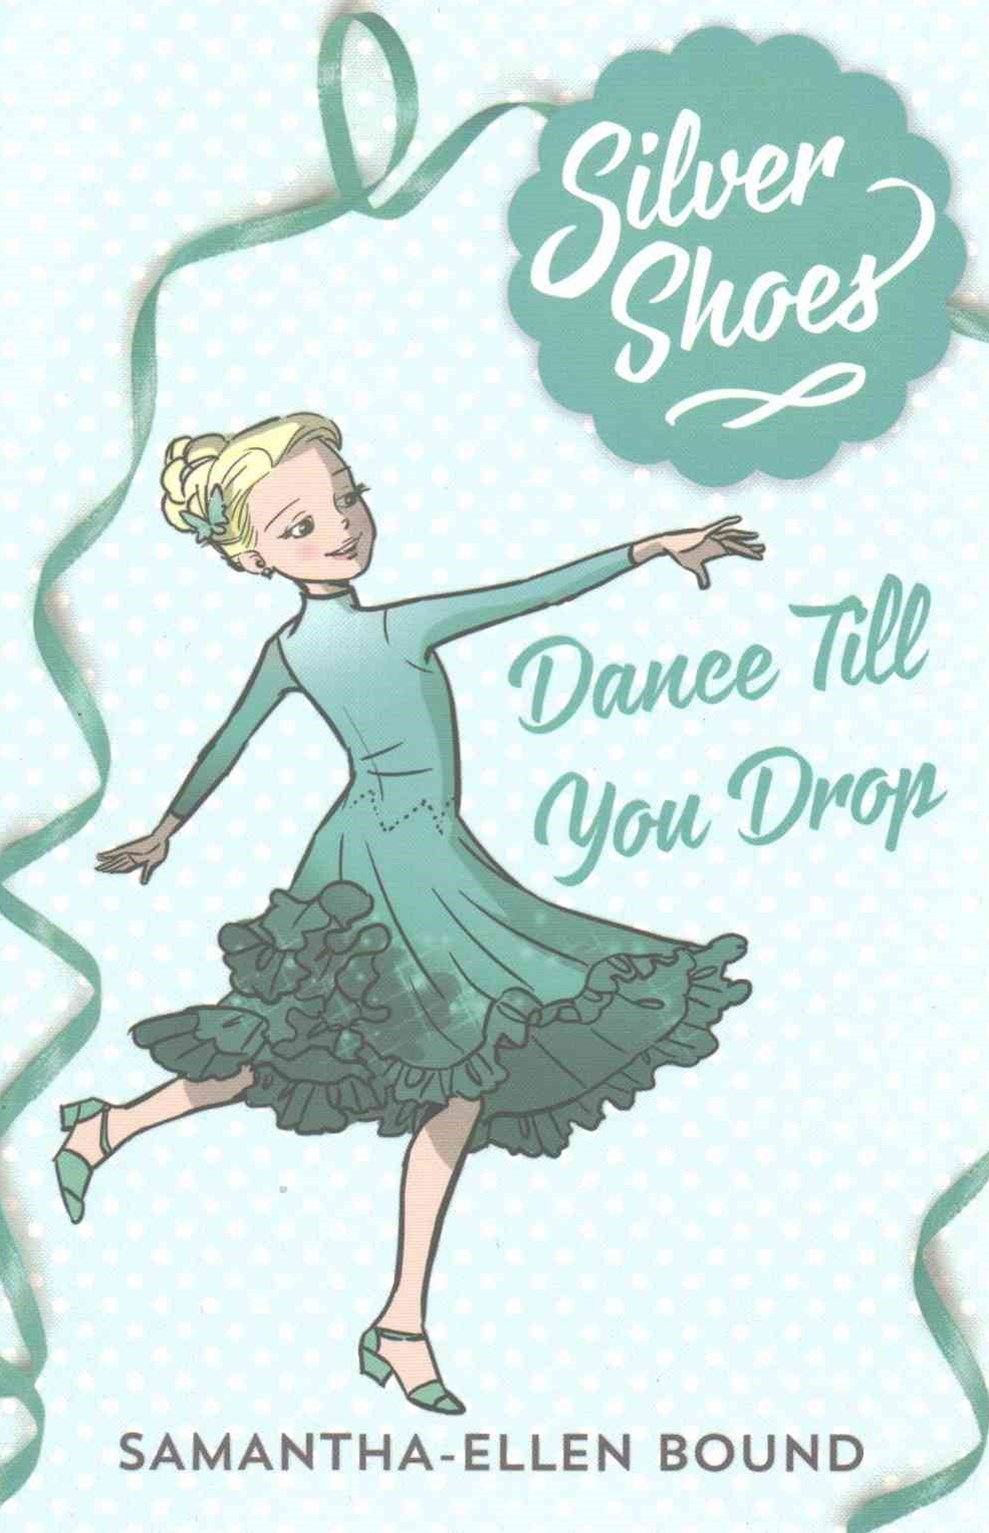 Dance till You Drop